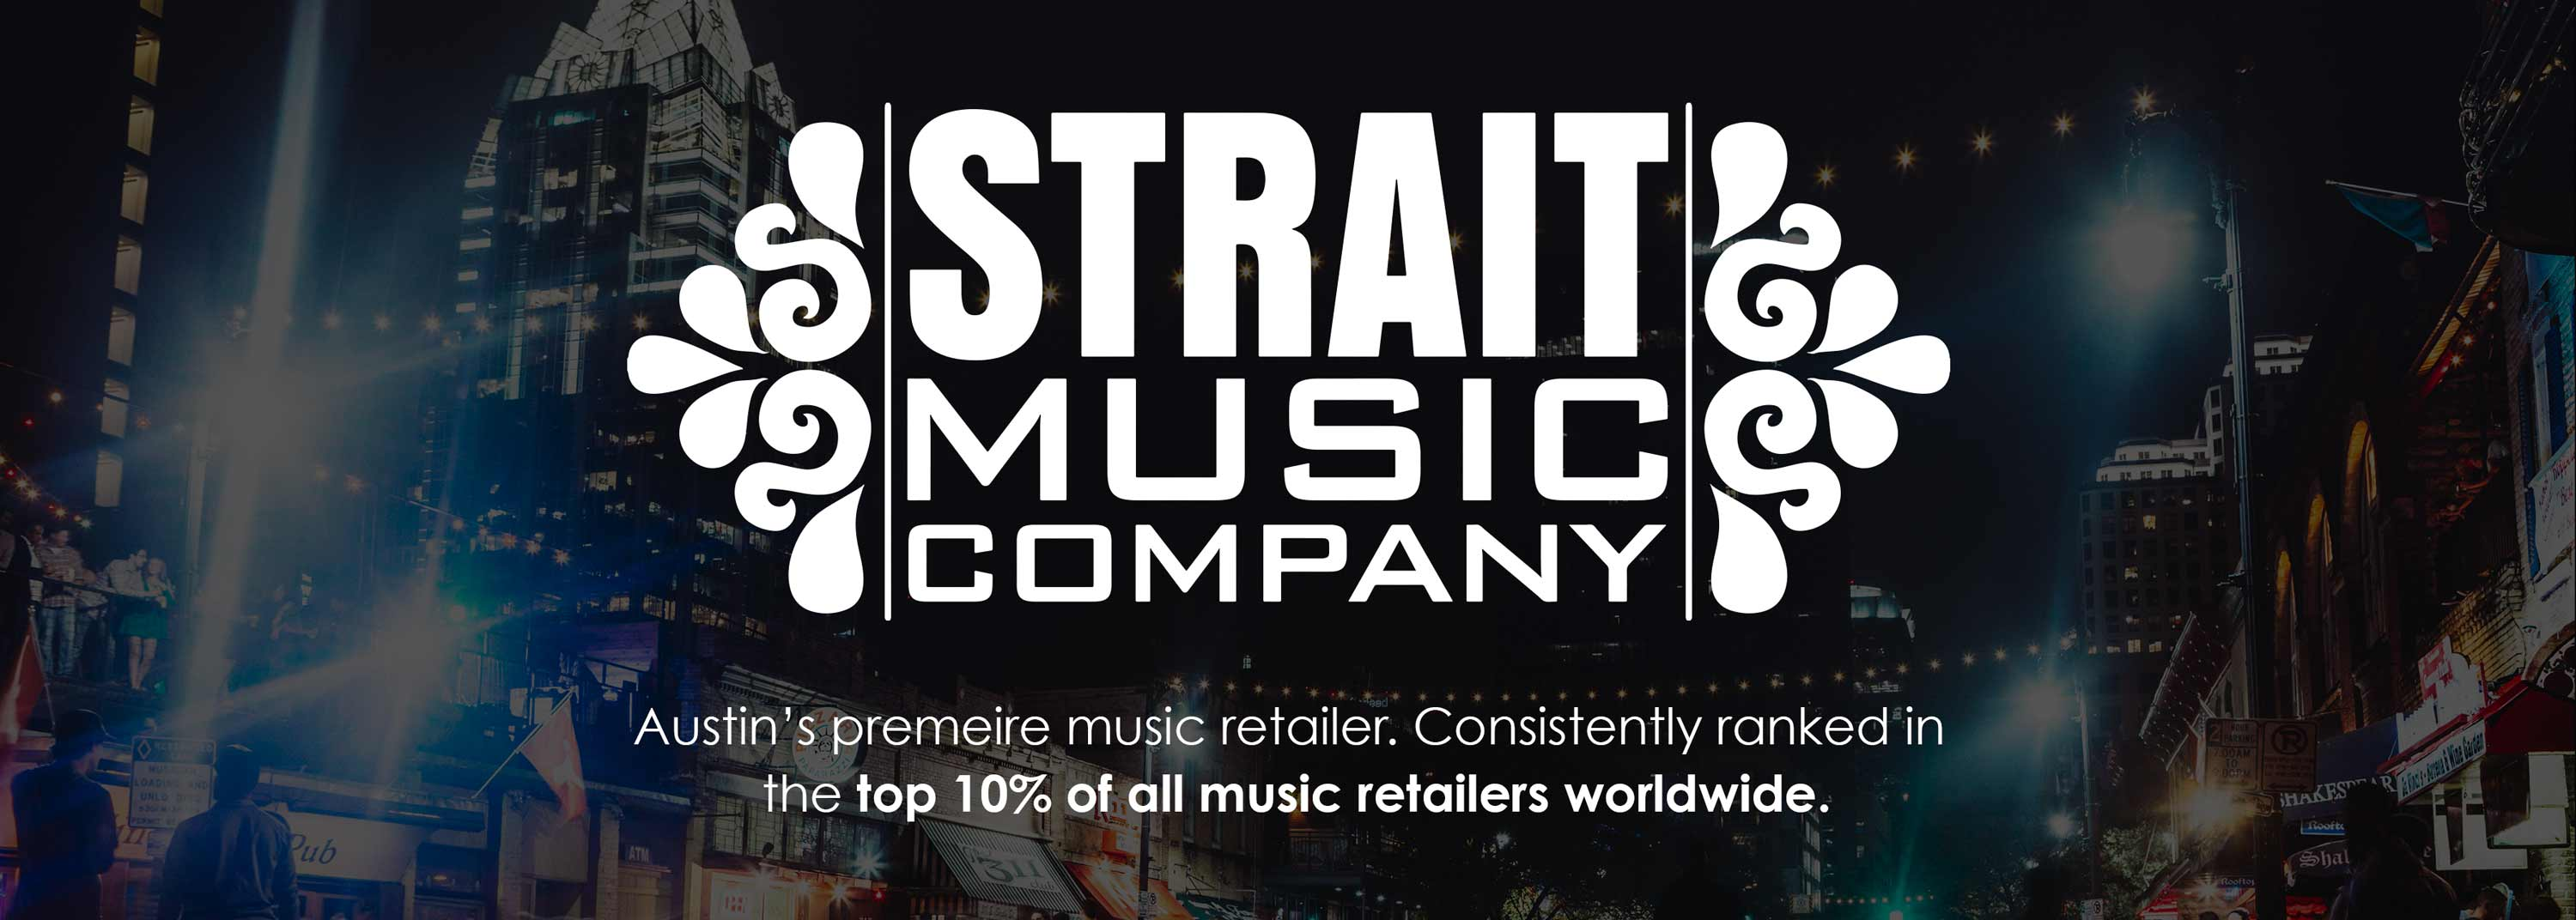 strait music austin texas full line music store. Black Bedroom Furniture Sets. Home Design Ideas